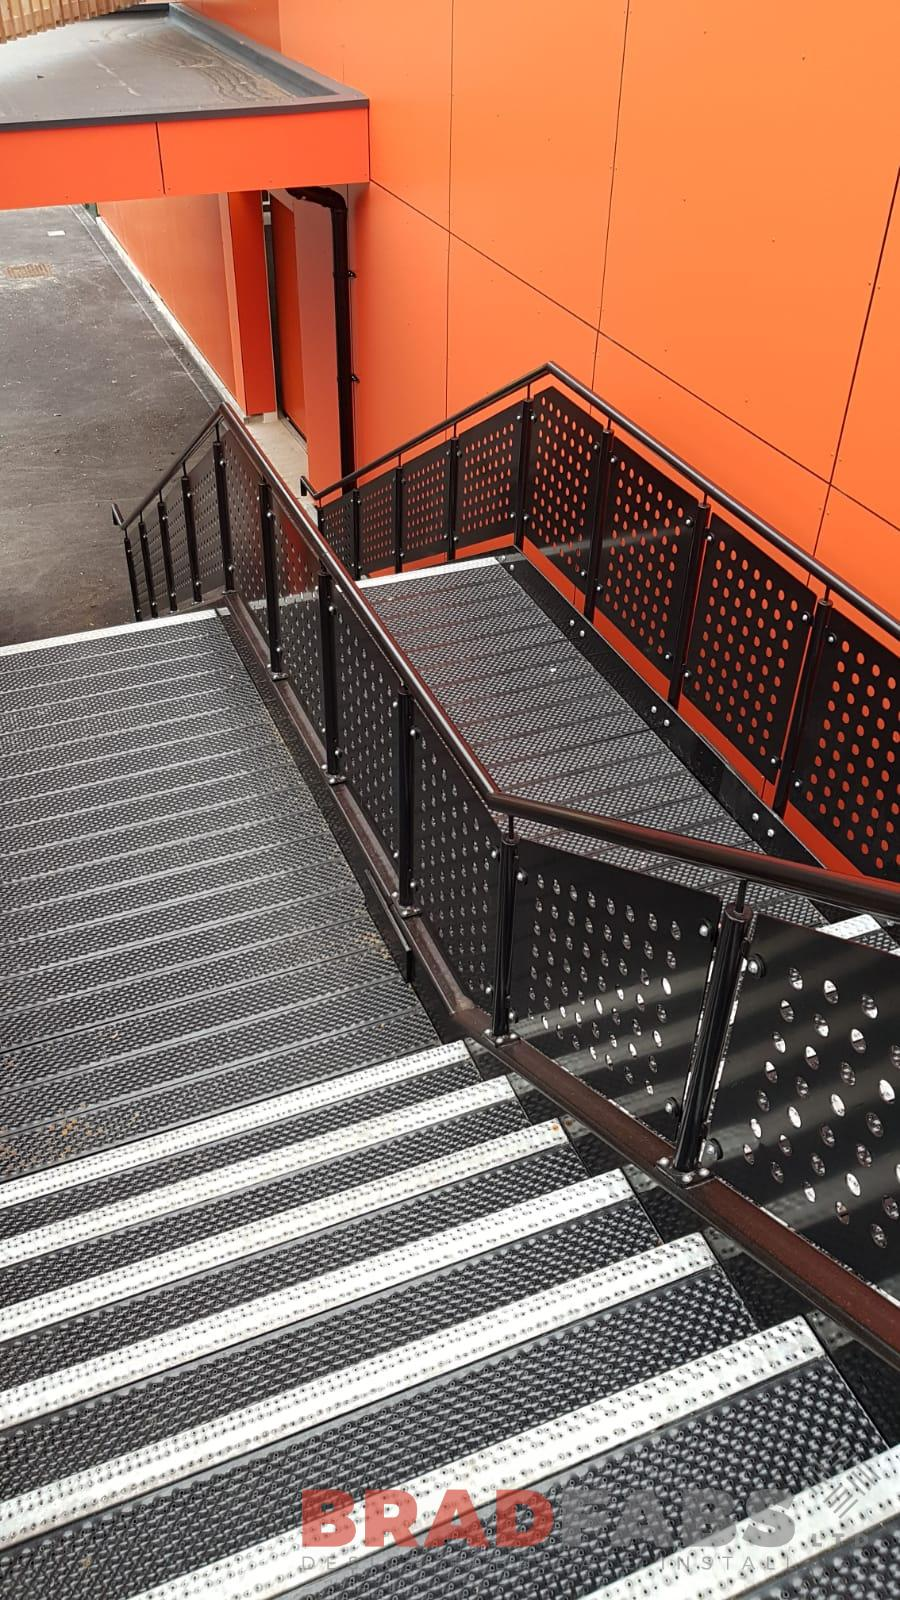 Mild steel galvanised and powder coated black on large commercial property staircase by Bradfabs